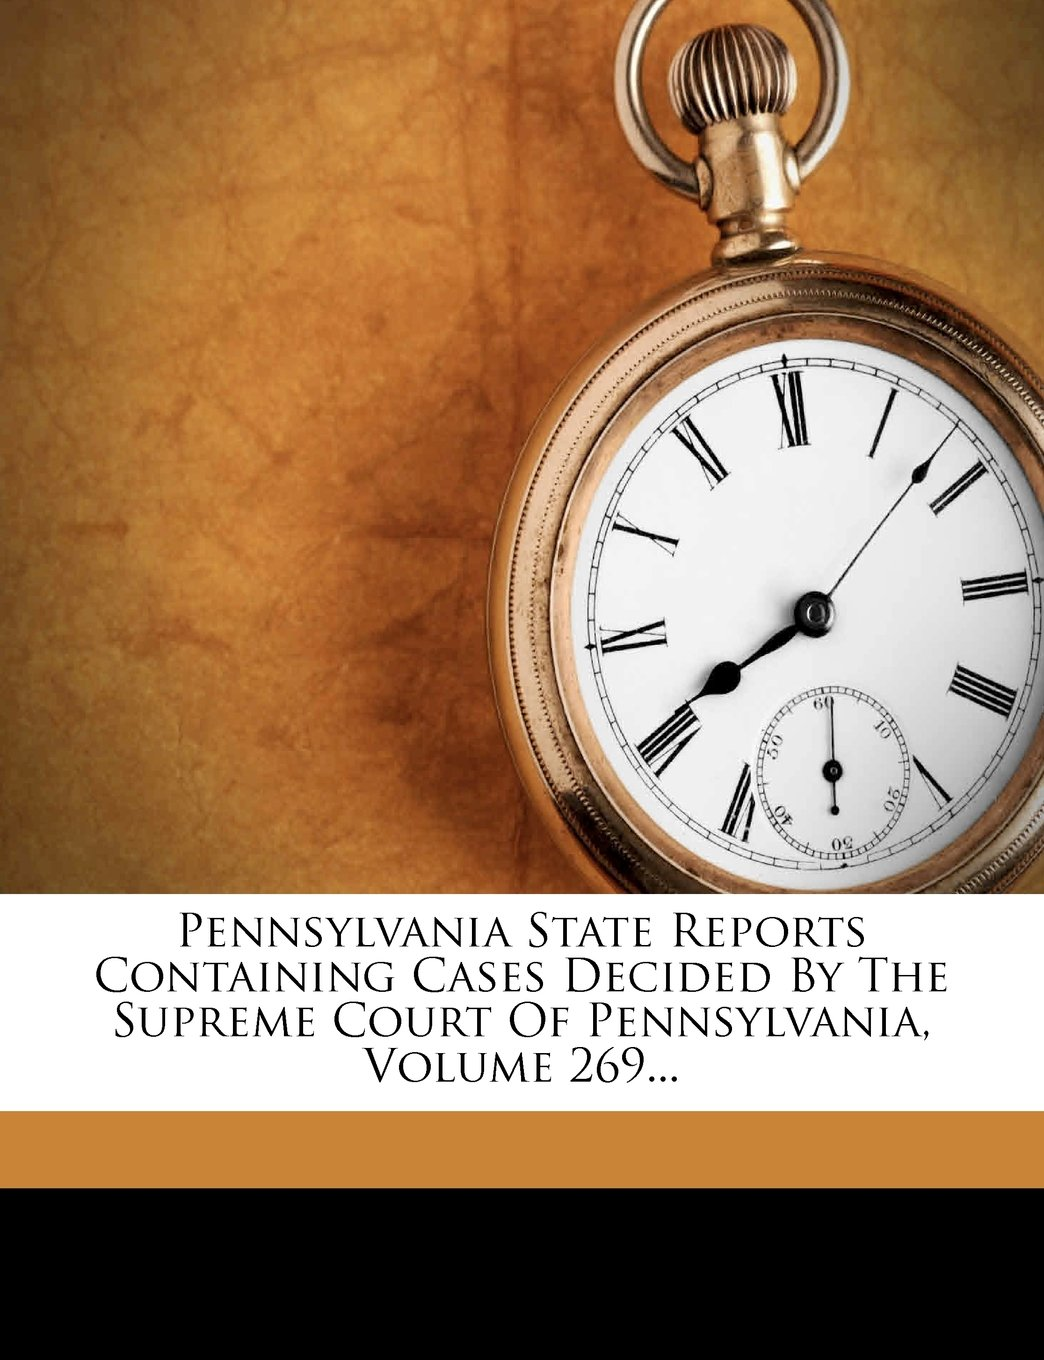 Pennsylvania State Reports Containing Cases Decided By The Supreme Court Of Pennsylvania, Volume 269... ebook